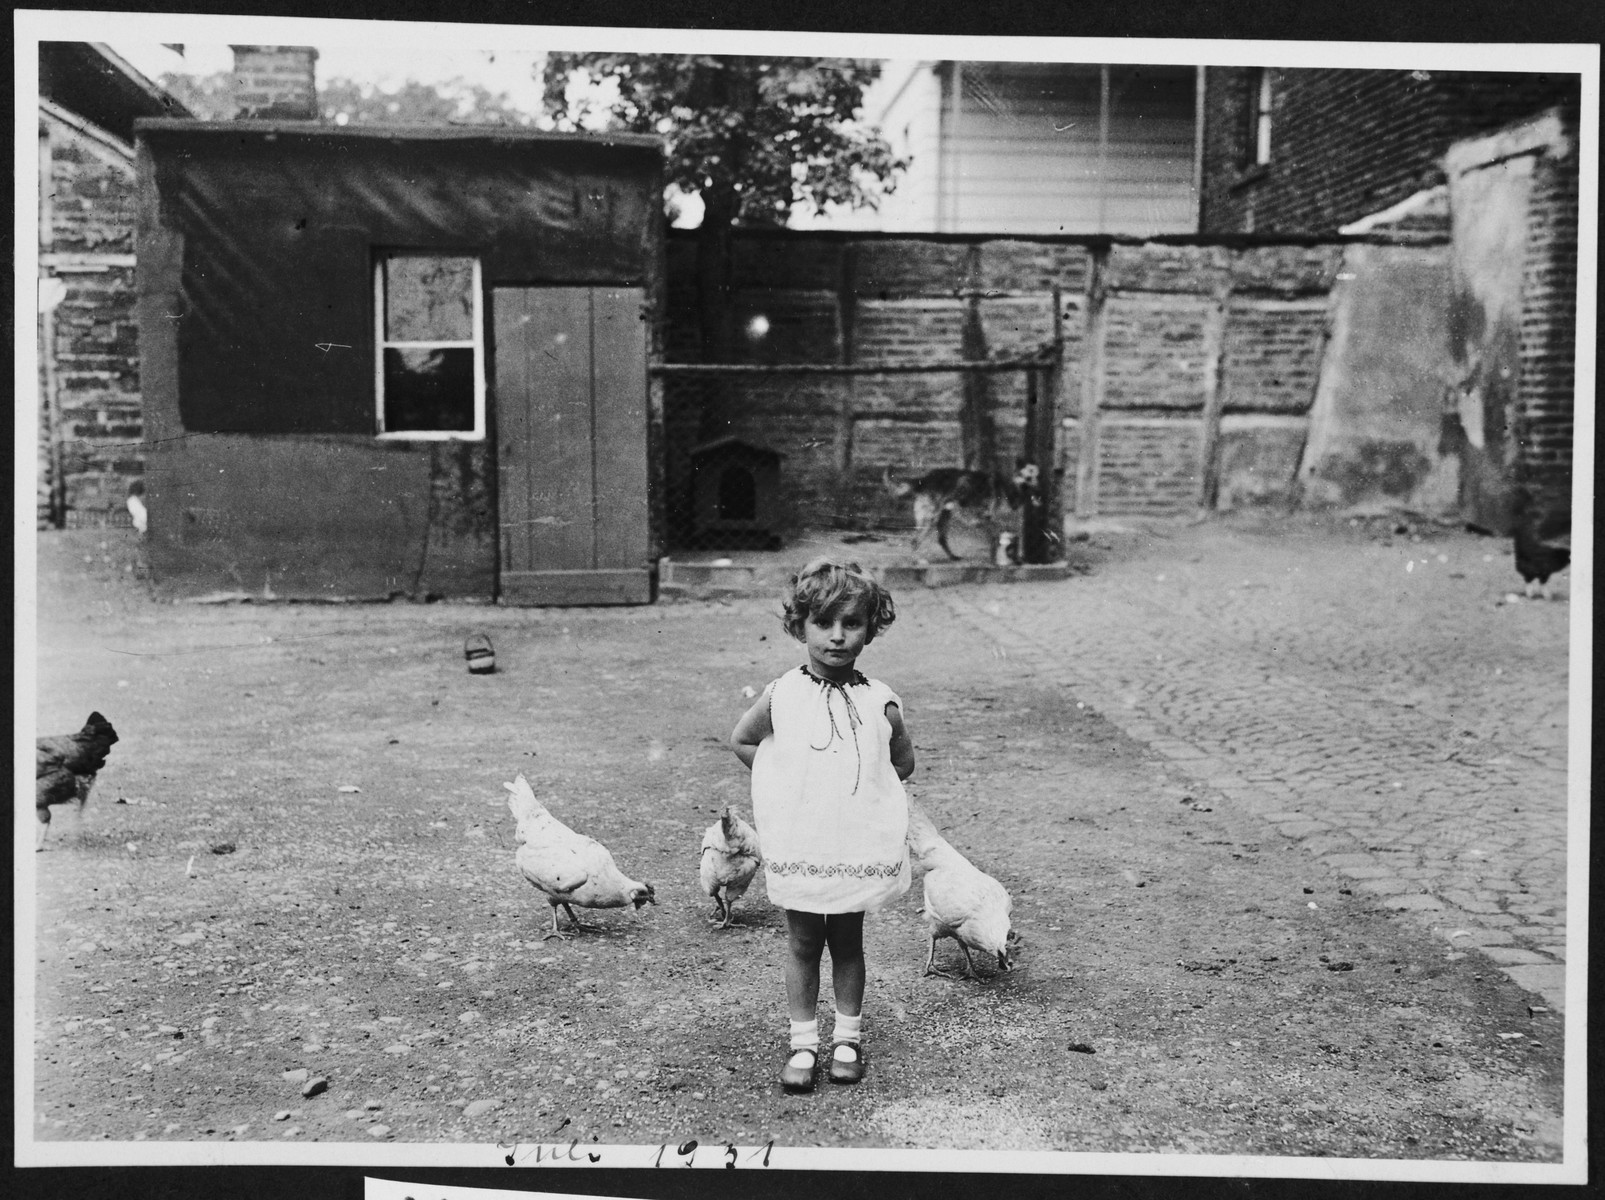 A Jewish child stands among the chickens on her parent's farm in Lechenich, Germany.  Pictured is Inge Berg. The family's sukkah can be seen in the background.